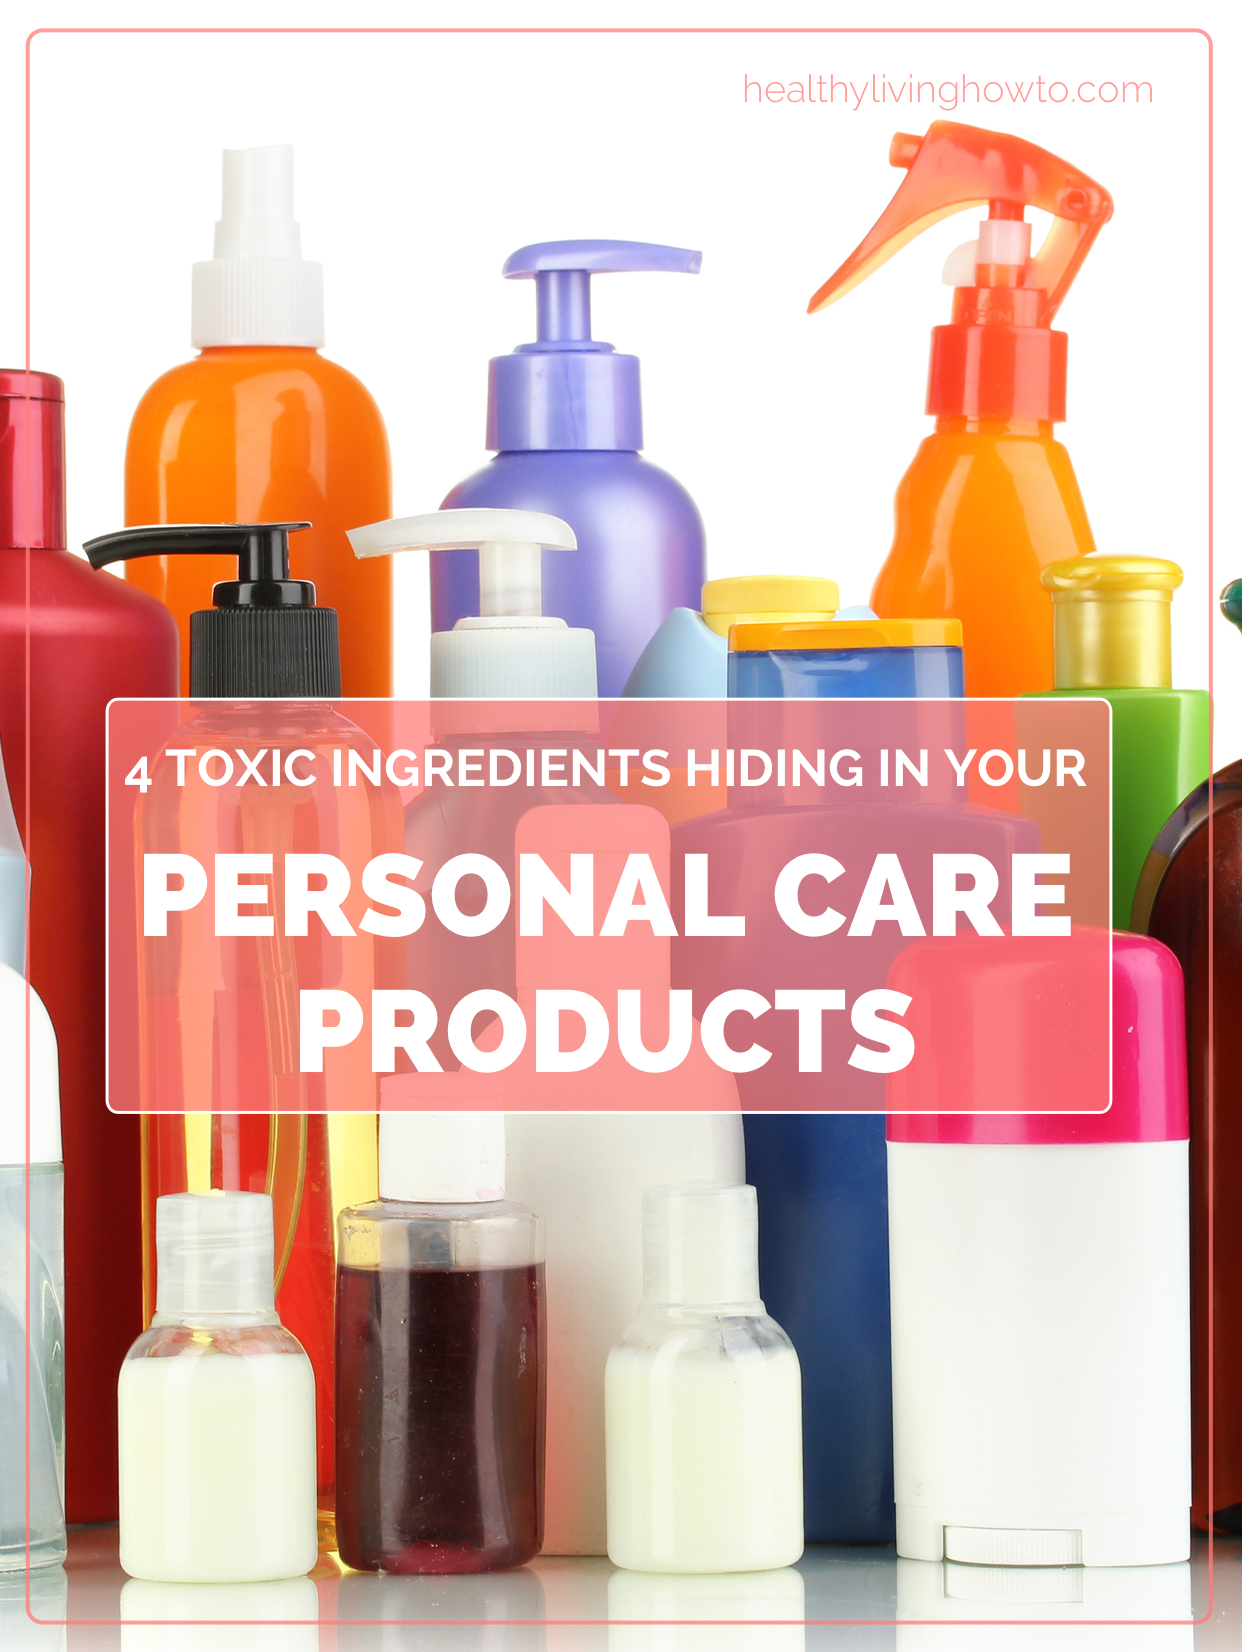 4 Toxic Ingredients Hiding In Your Personal Care Products